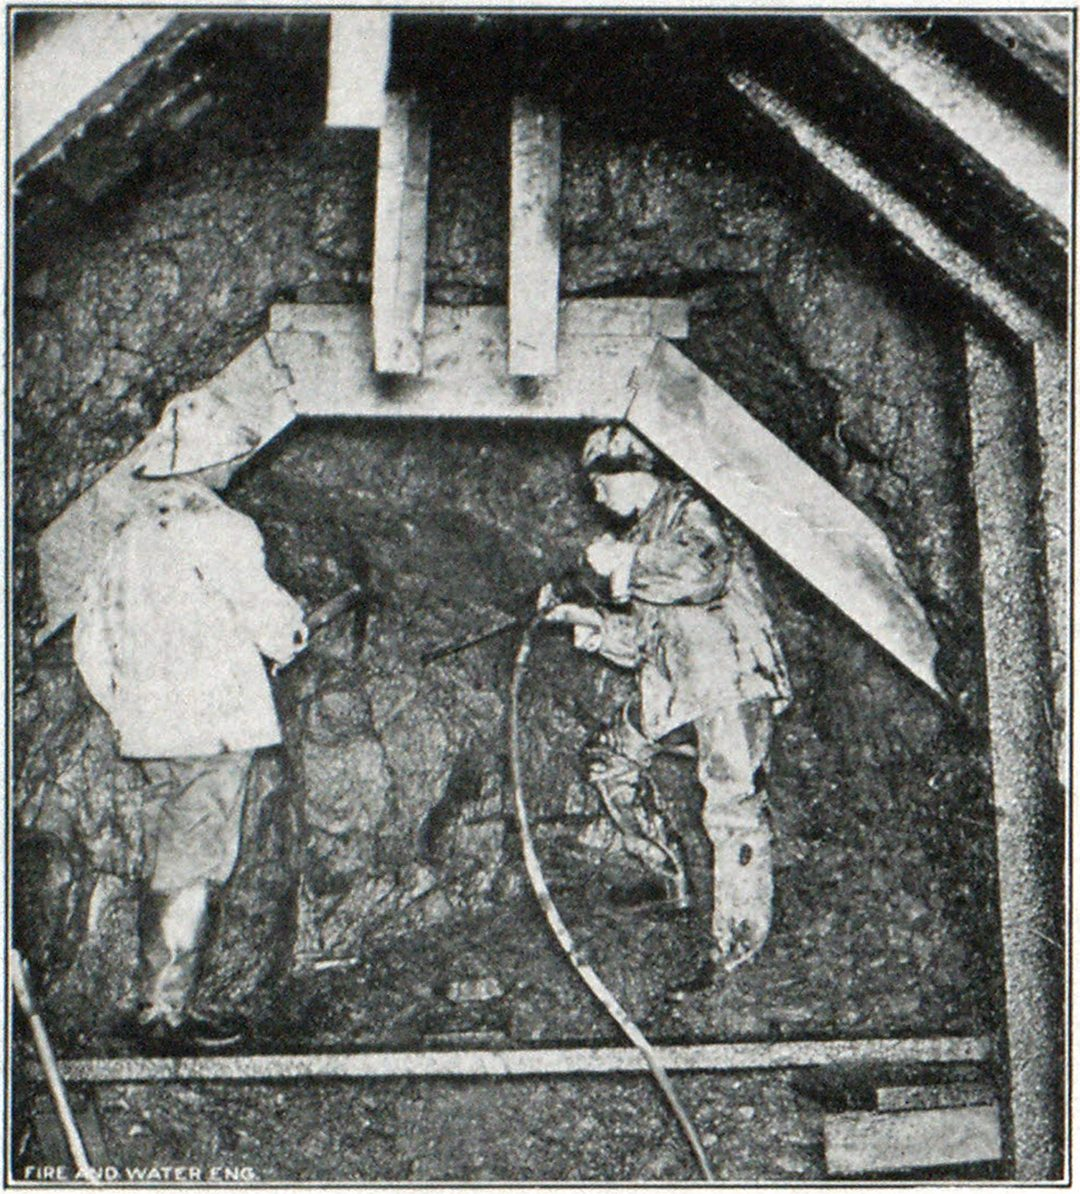 Steel Drill in Operation Under Hill at Shepaug River Valley Near Litchfield, Conn. Photograph Was Taken at Distance of One and One-Fifth Miles Within Tunnel